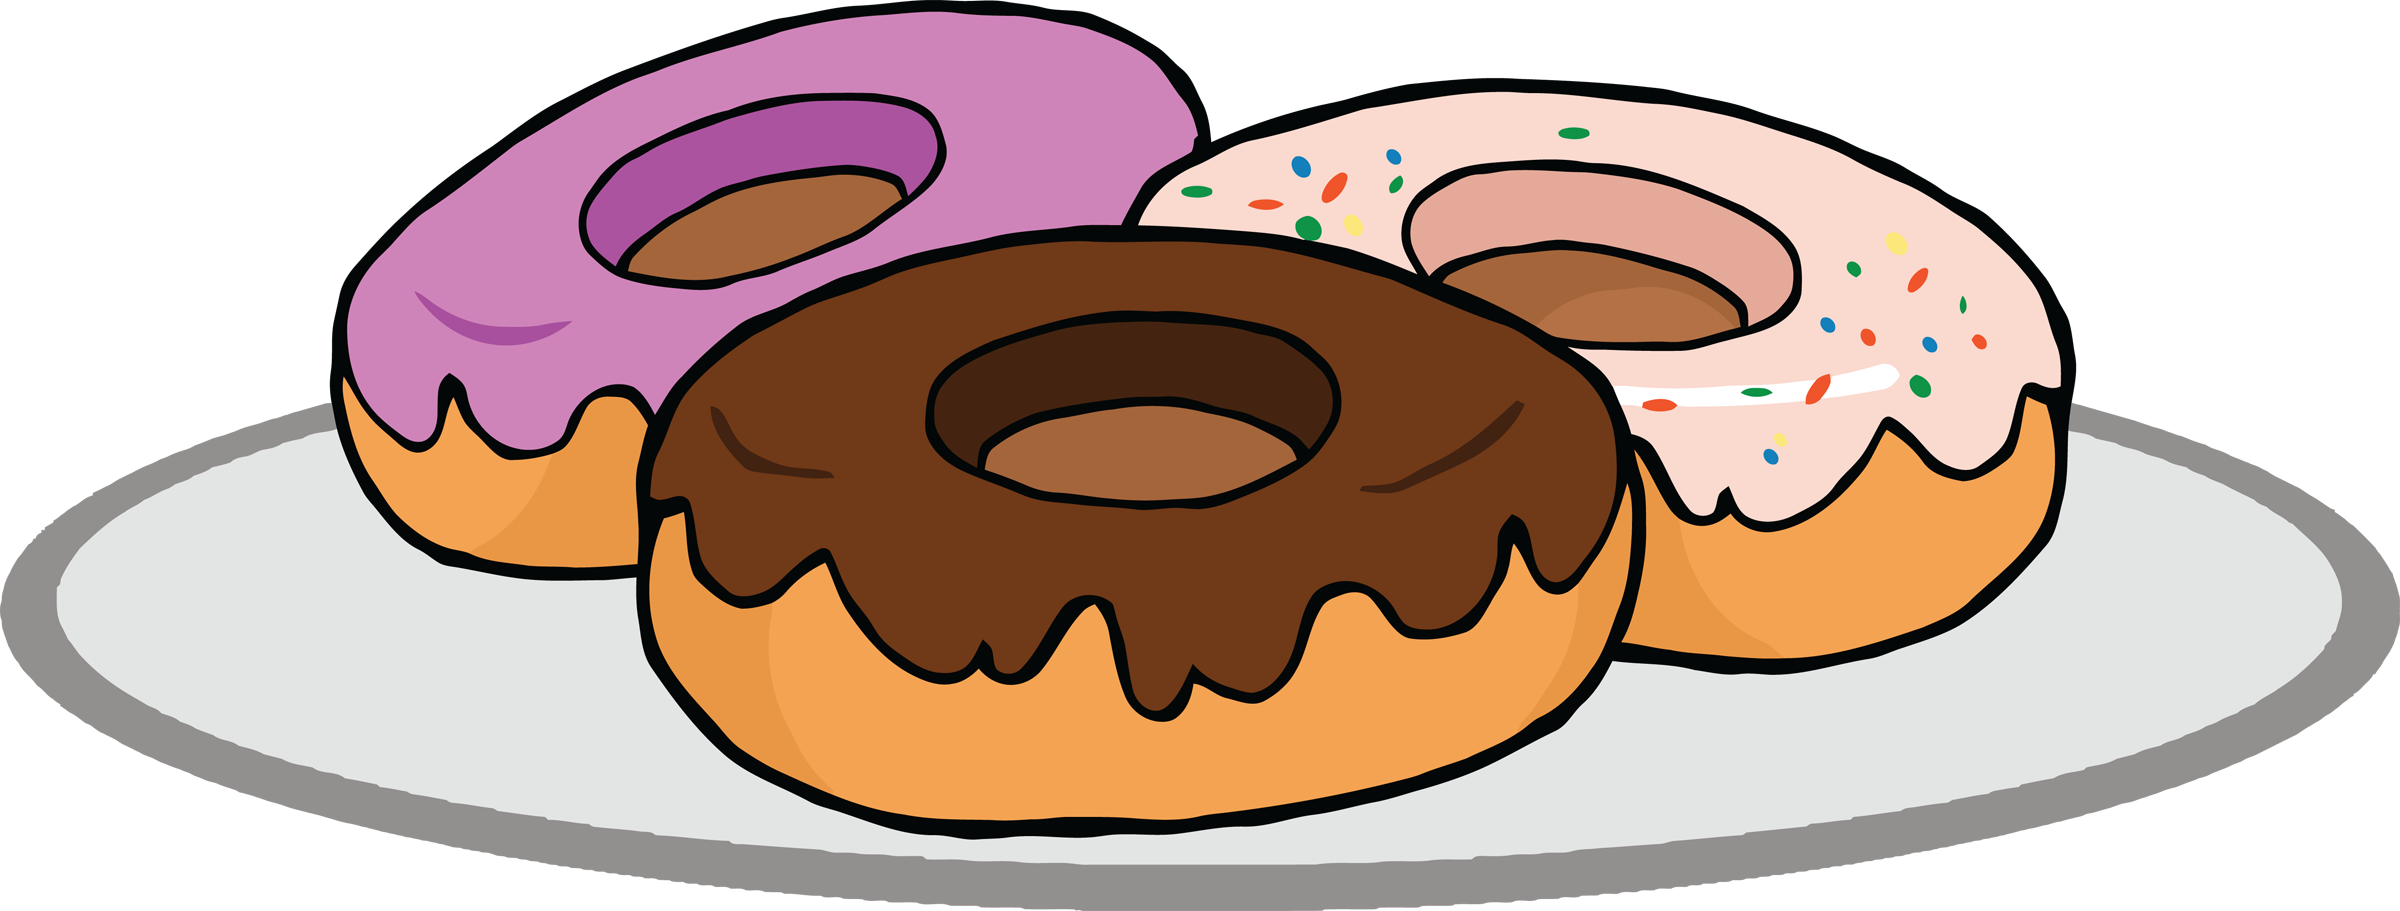 Donuts vector donut box. Collection of clipart